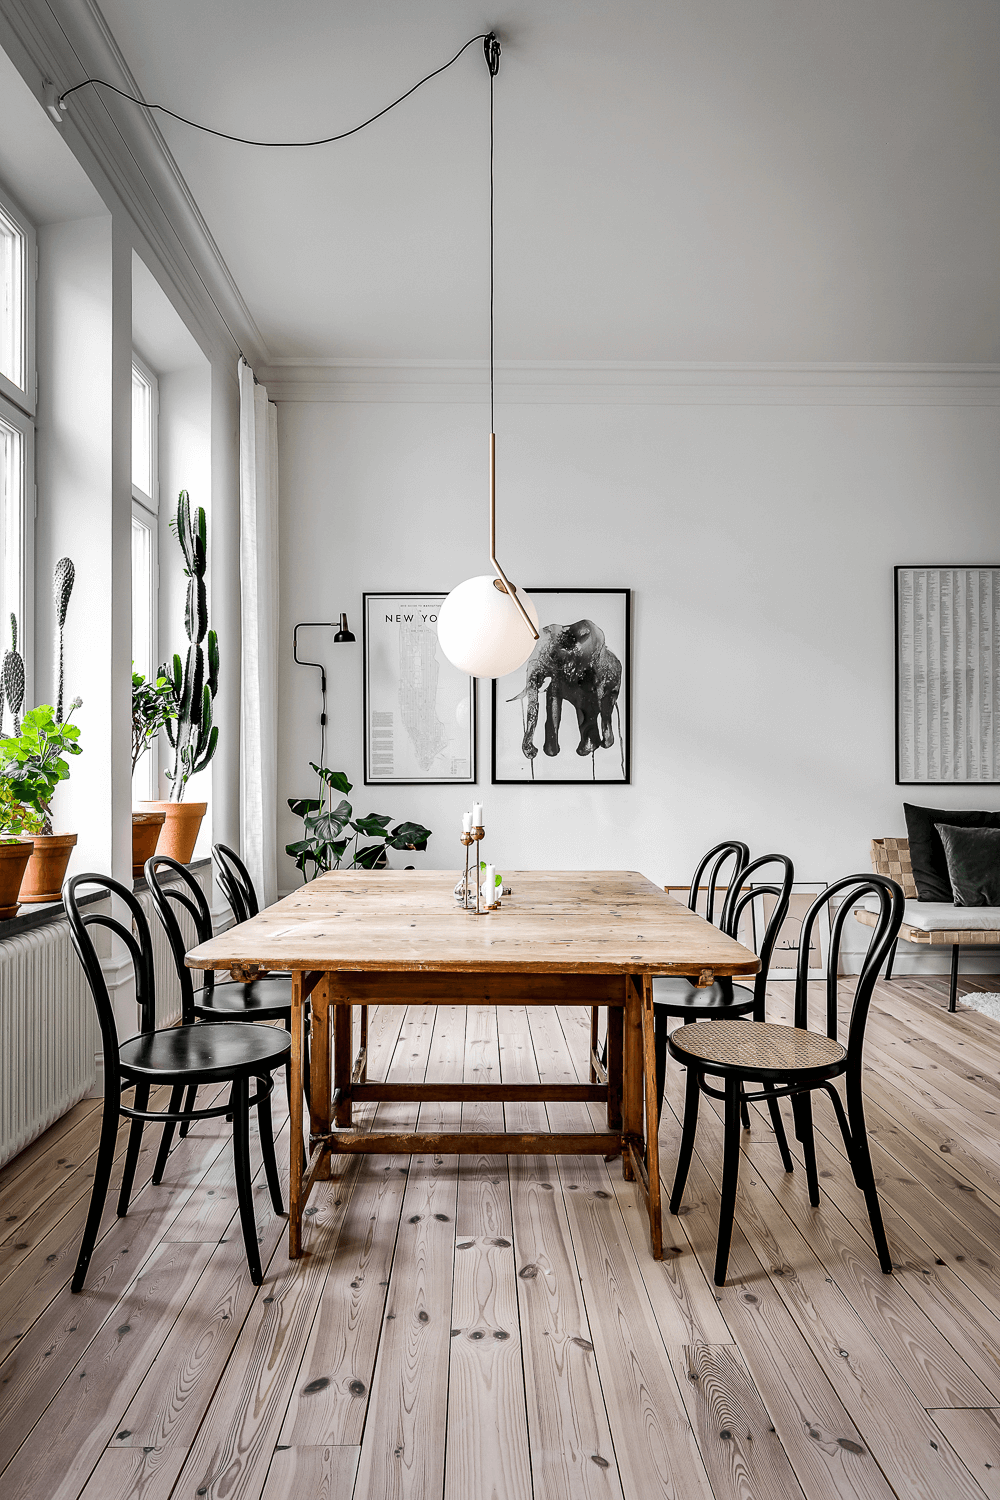 this is one of the characteristics of Scandinavian interiors, reclaimed wood style with wooden floors and wooden table(1)